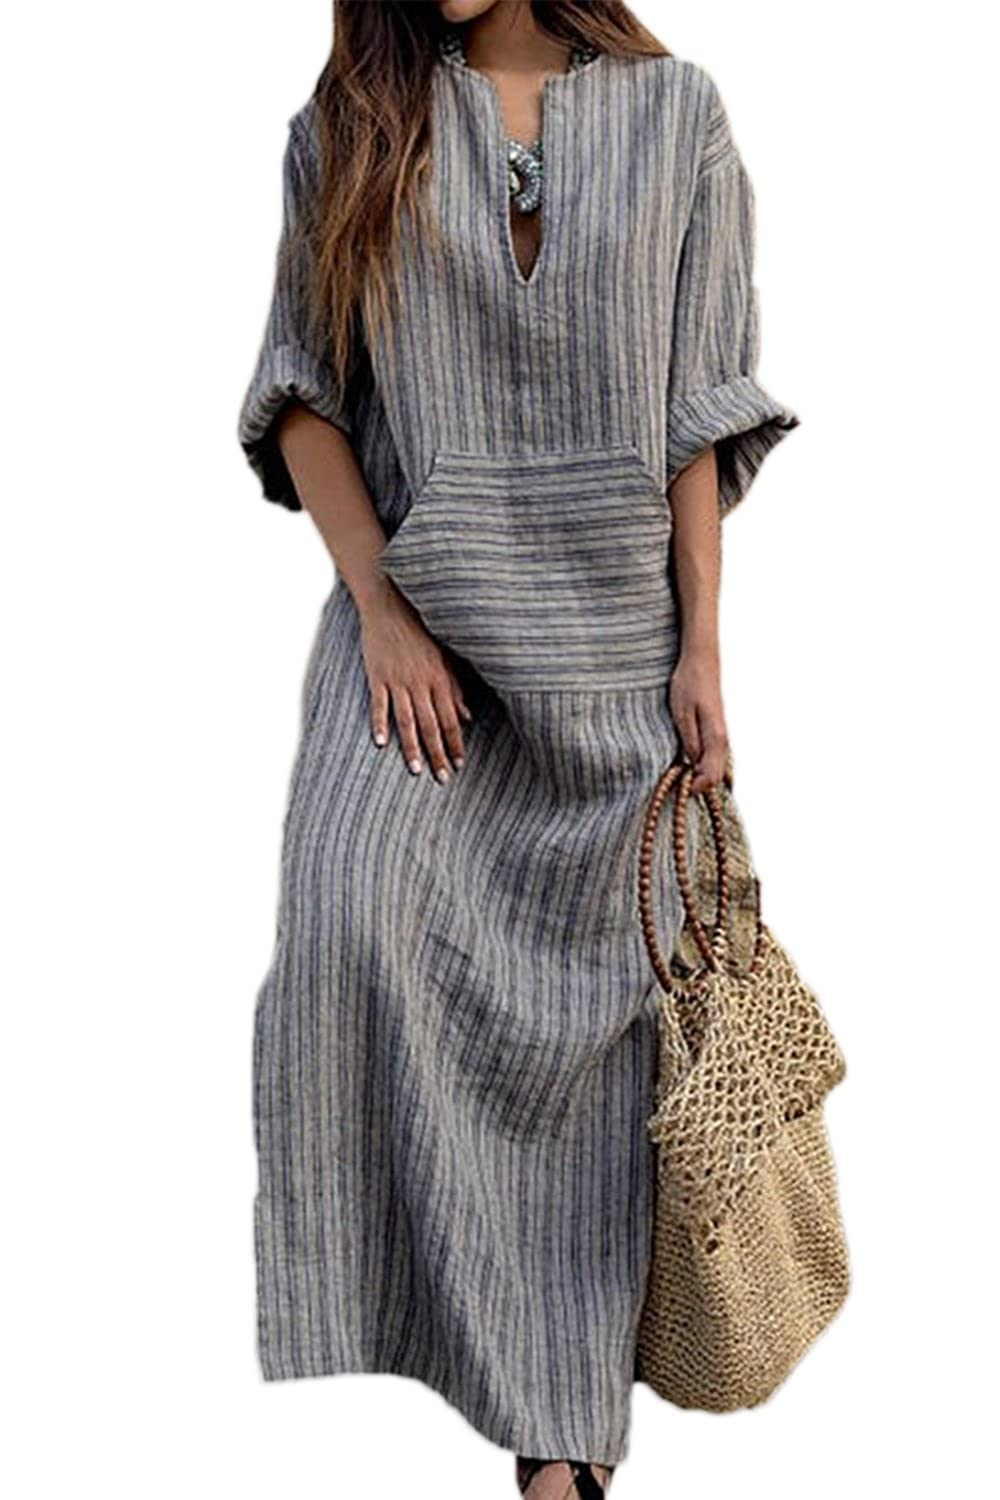 89595ac775 Simgahuva Womens Linen Maxi Dress Cotton Stripes Shift Dresses Plus Size  with Pocket at Amazon Women s Clothing store